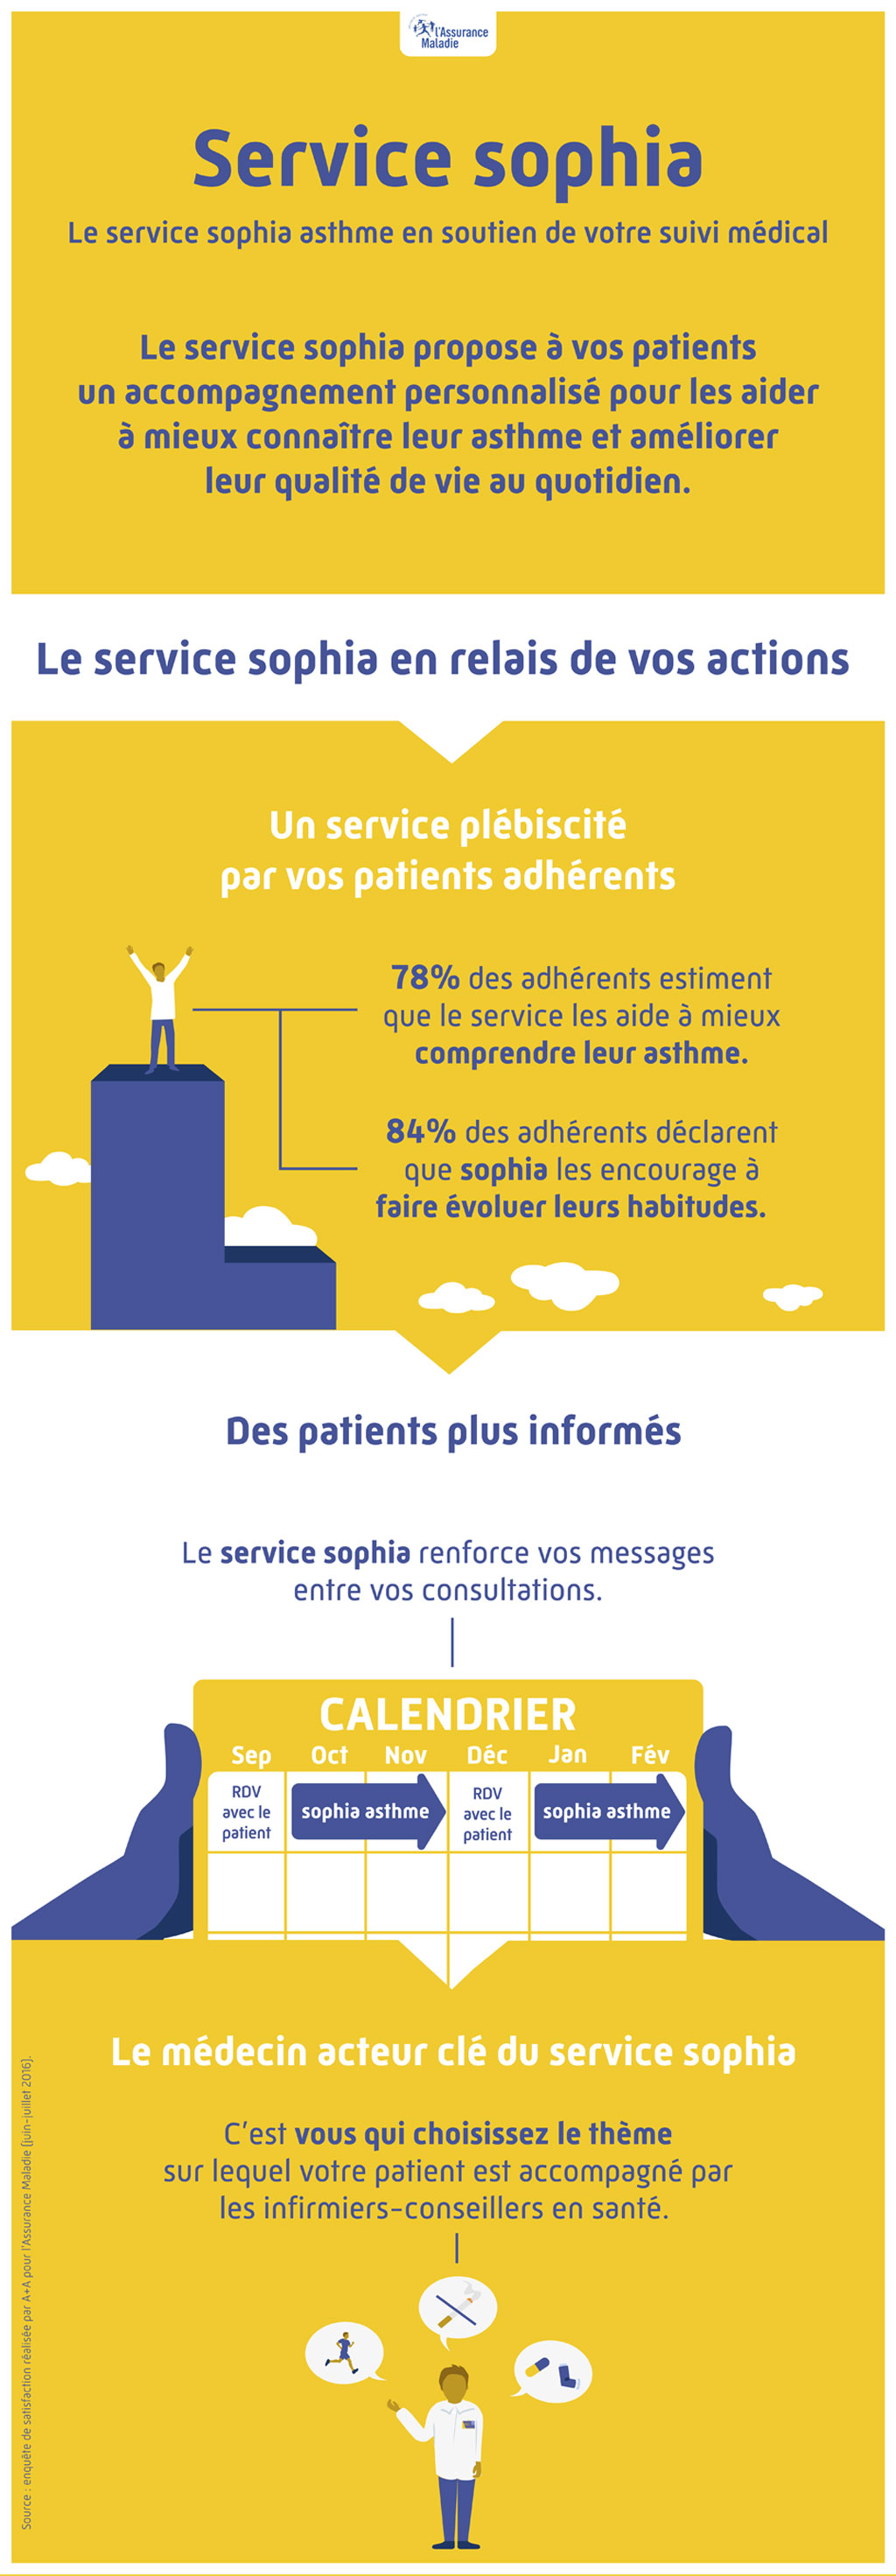 service sophia asthme_infographie PS